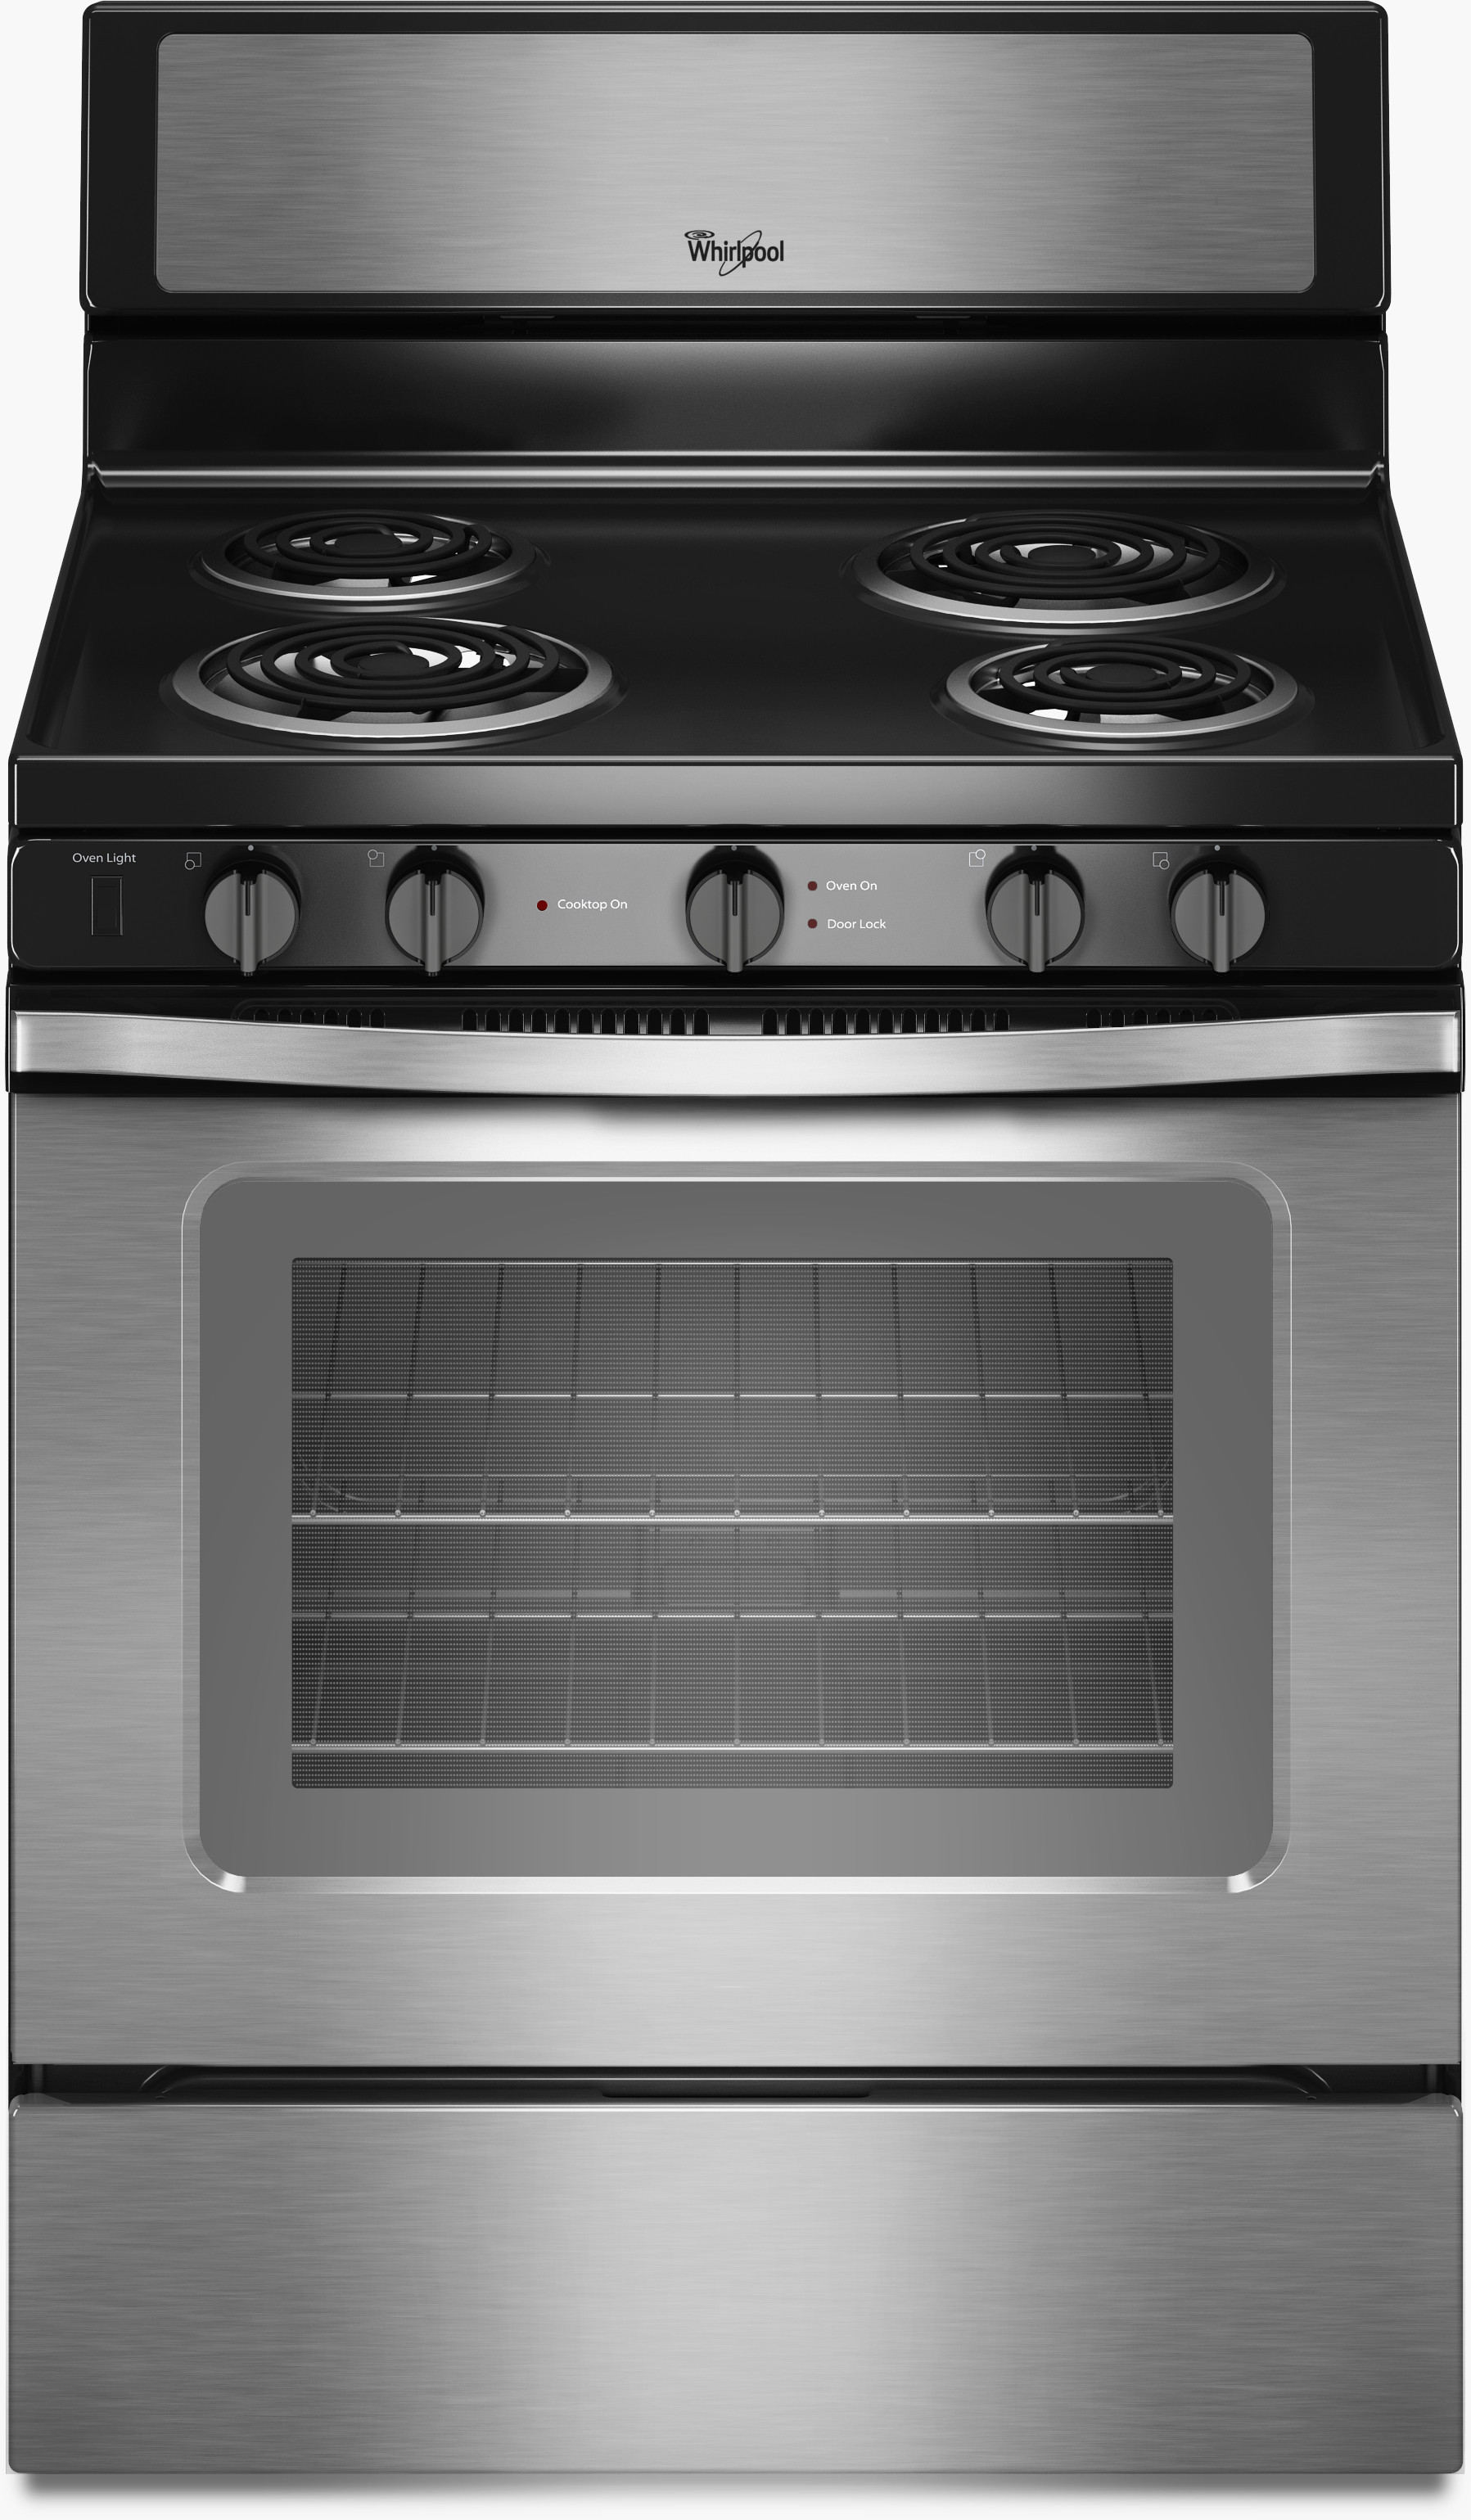 Whirlpool Wfc340s0es 30 Inch Freestanding Electric Range